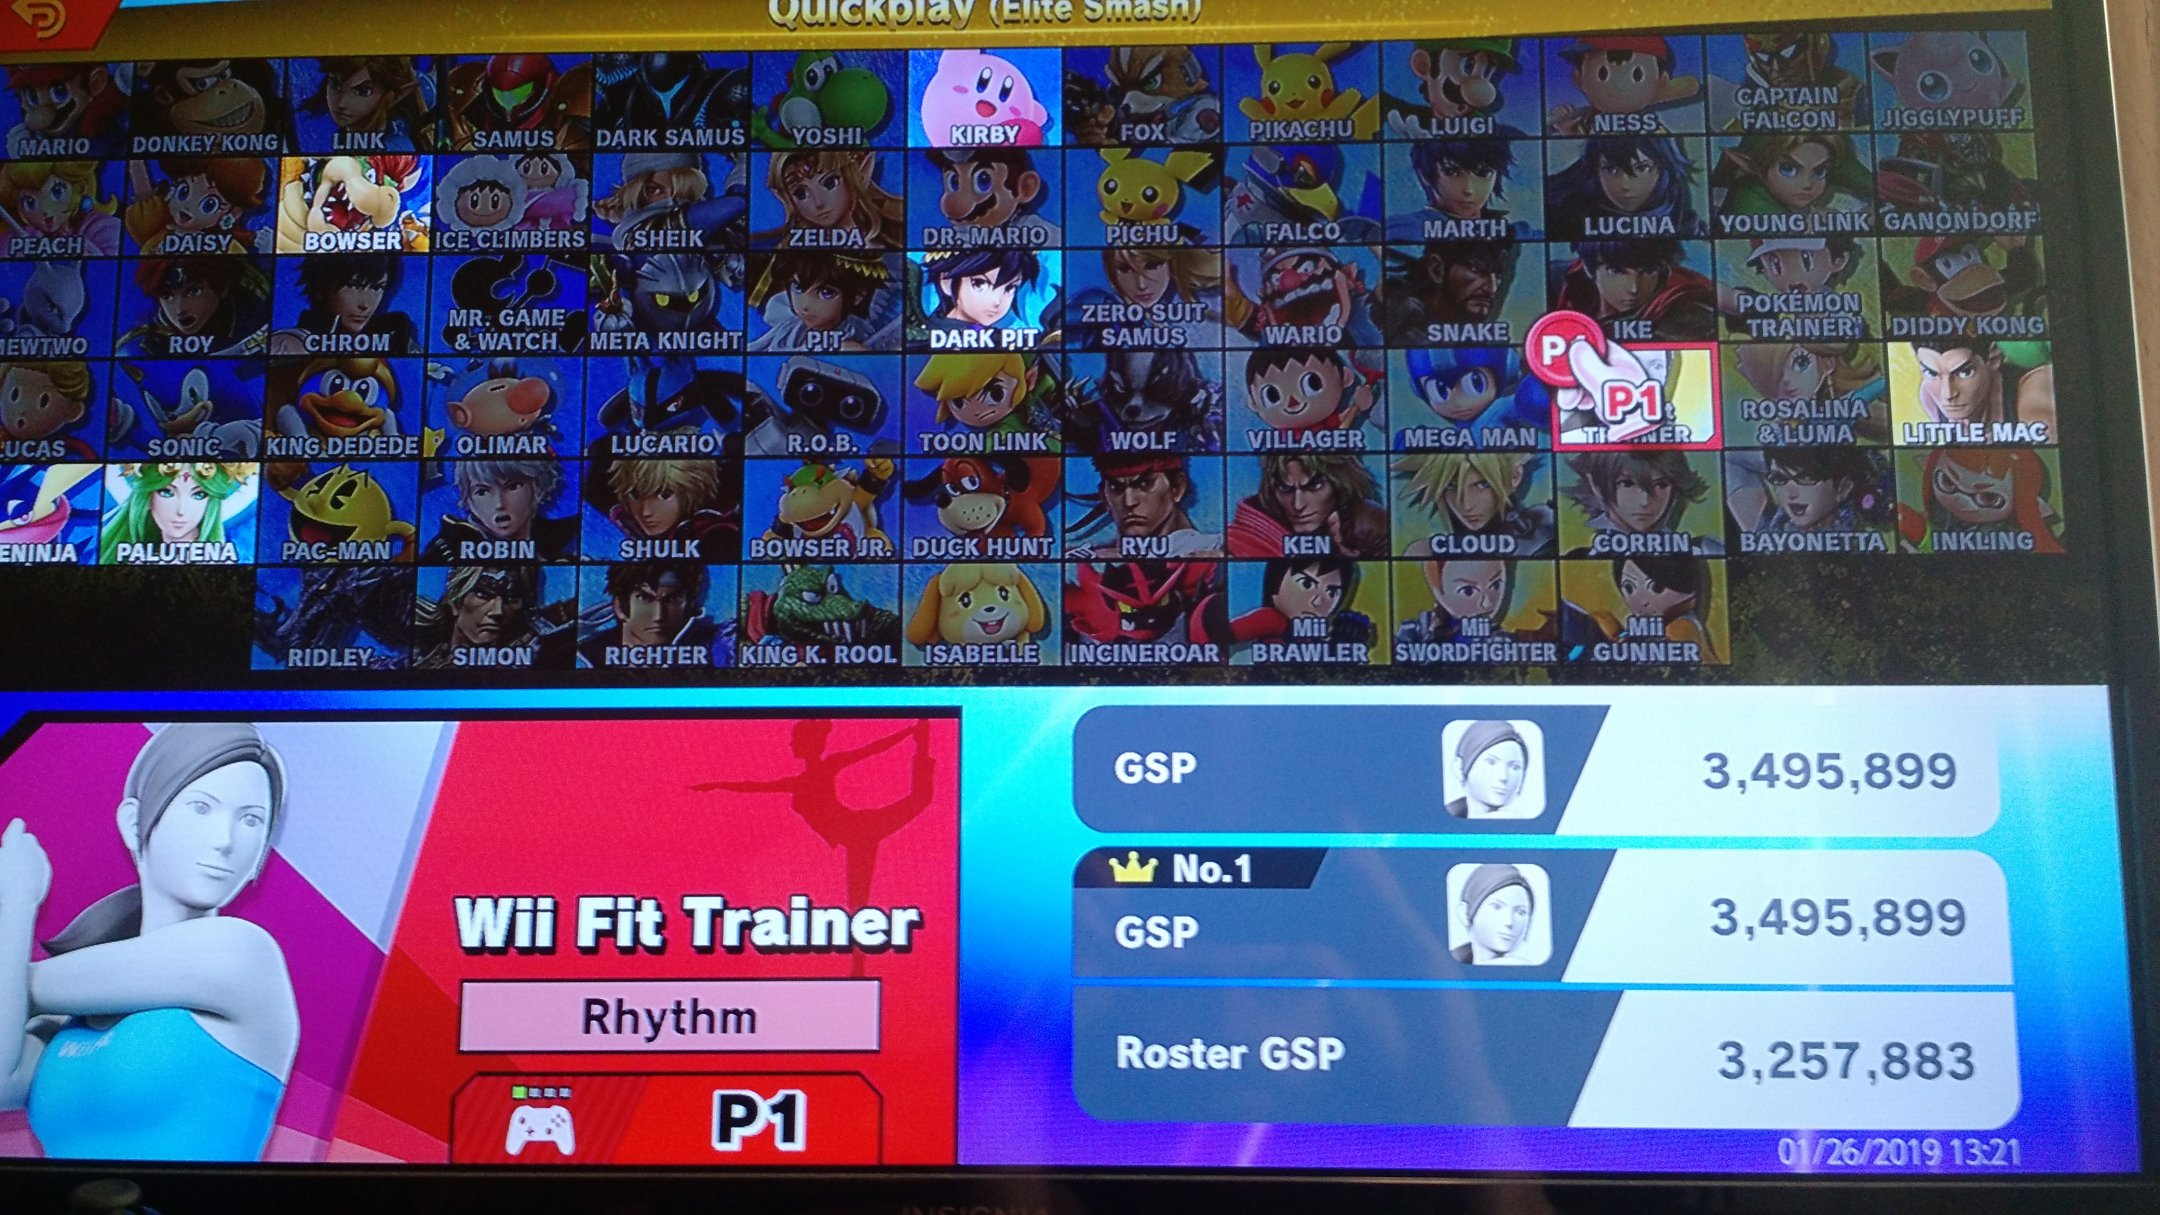 Current highest known GSP | Page 16 | Smashboards